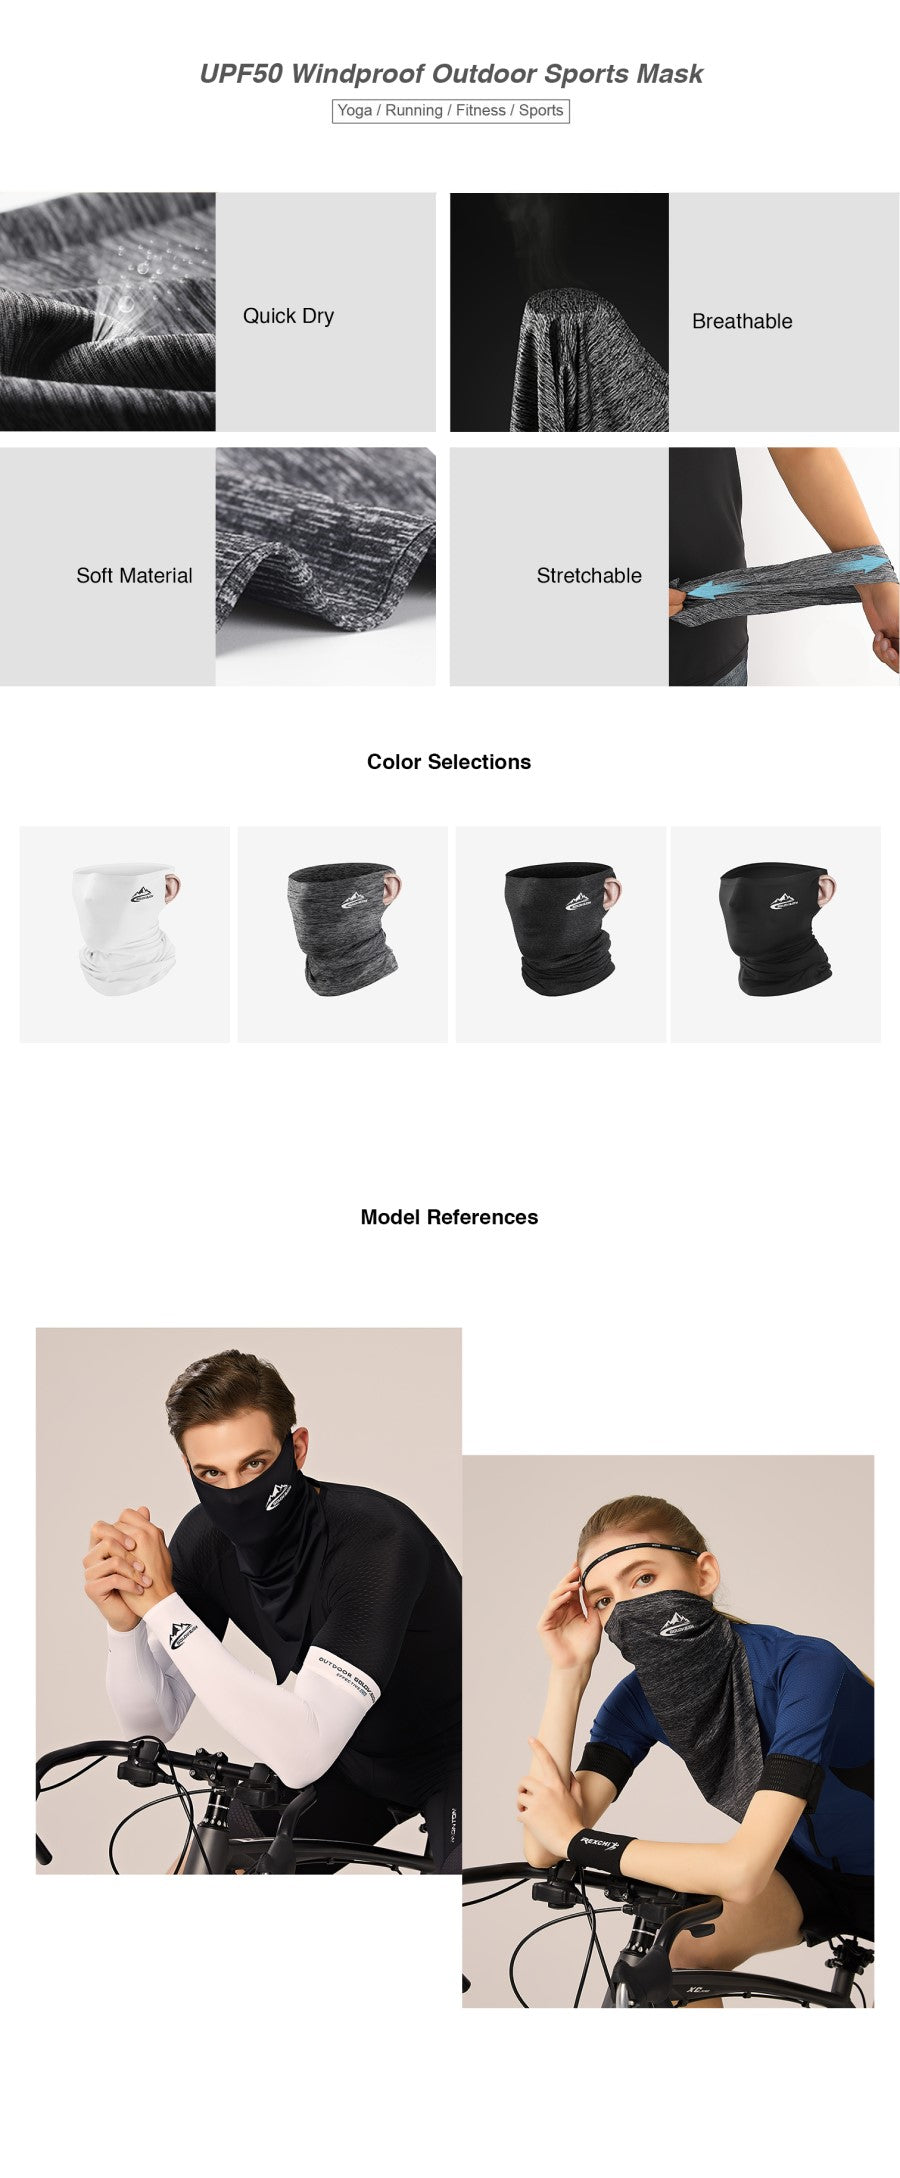 UPF50 Windproof Outdoor Sports Mask